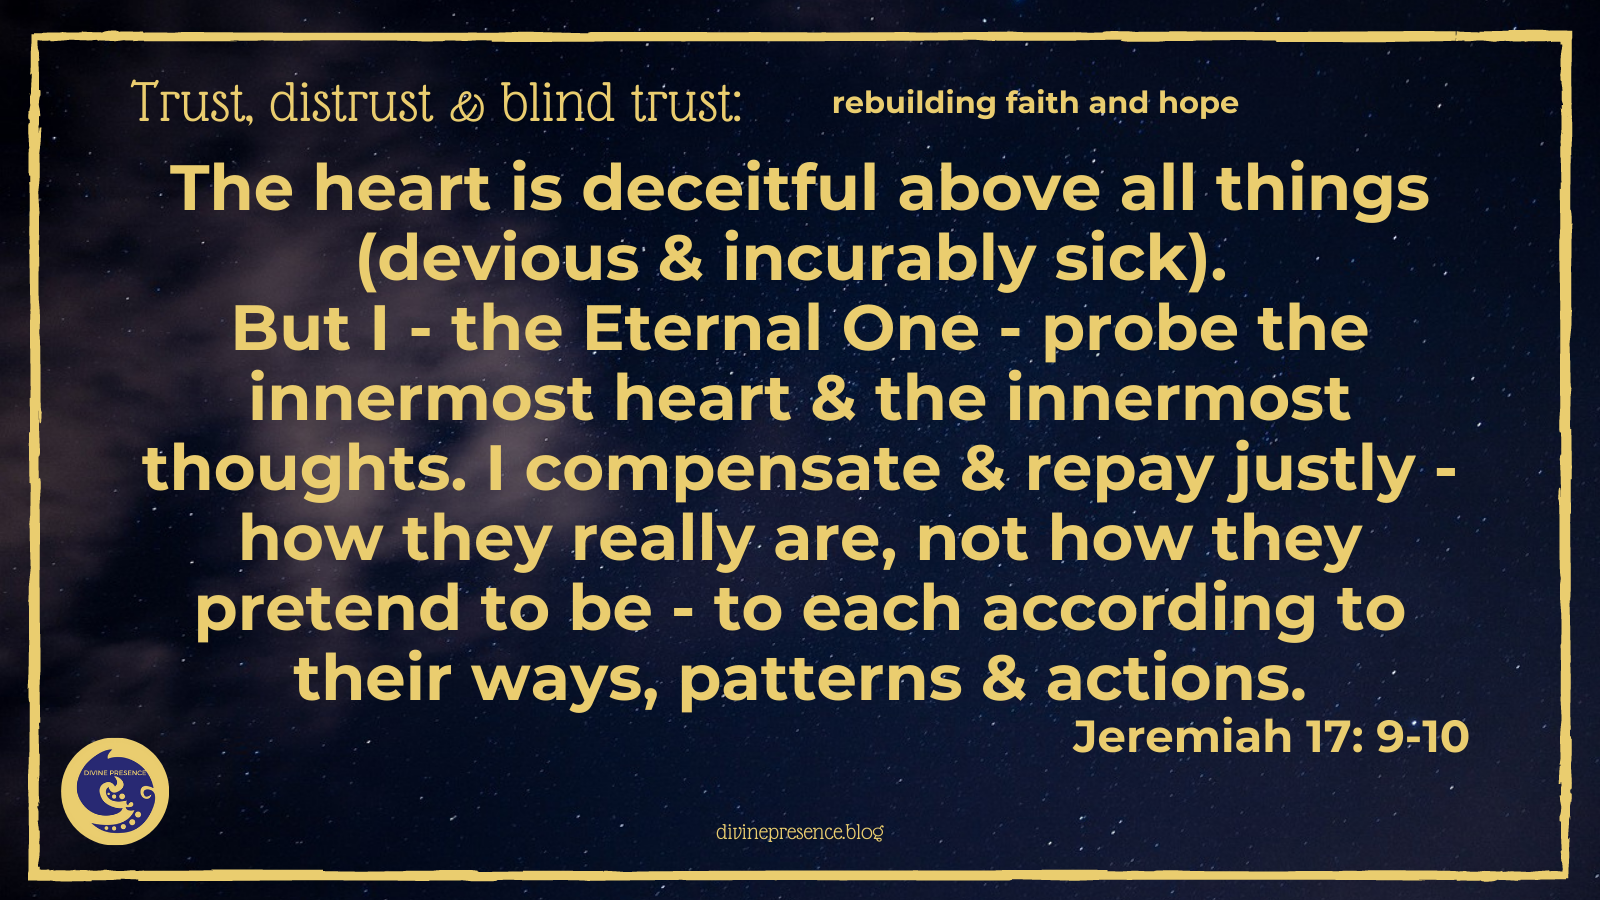 The heart is deceitful above all things, devious & incurably sick.  But I - the Eternal One - probe the innermost heart & the innermost thoughts. I compensate & repay justly - how they really are, not how they pretend to be - to each according to their ways, patterns & actions, Jeremiah 17: 9-10